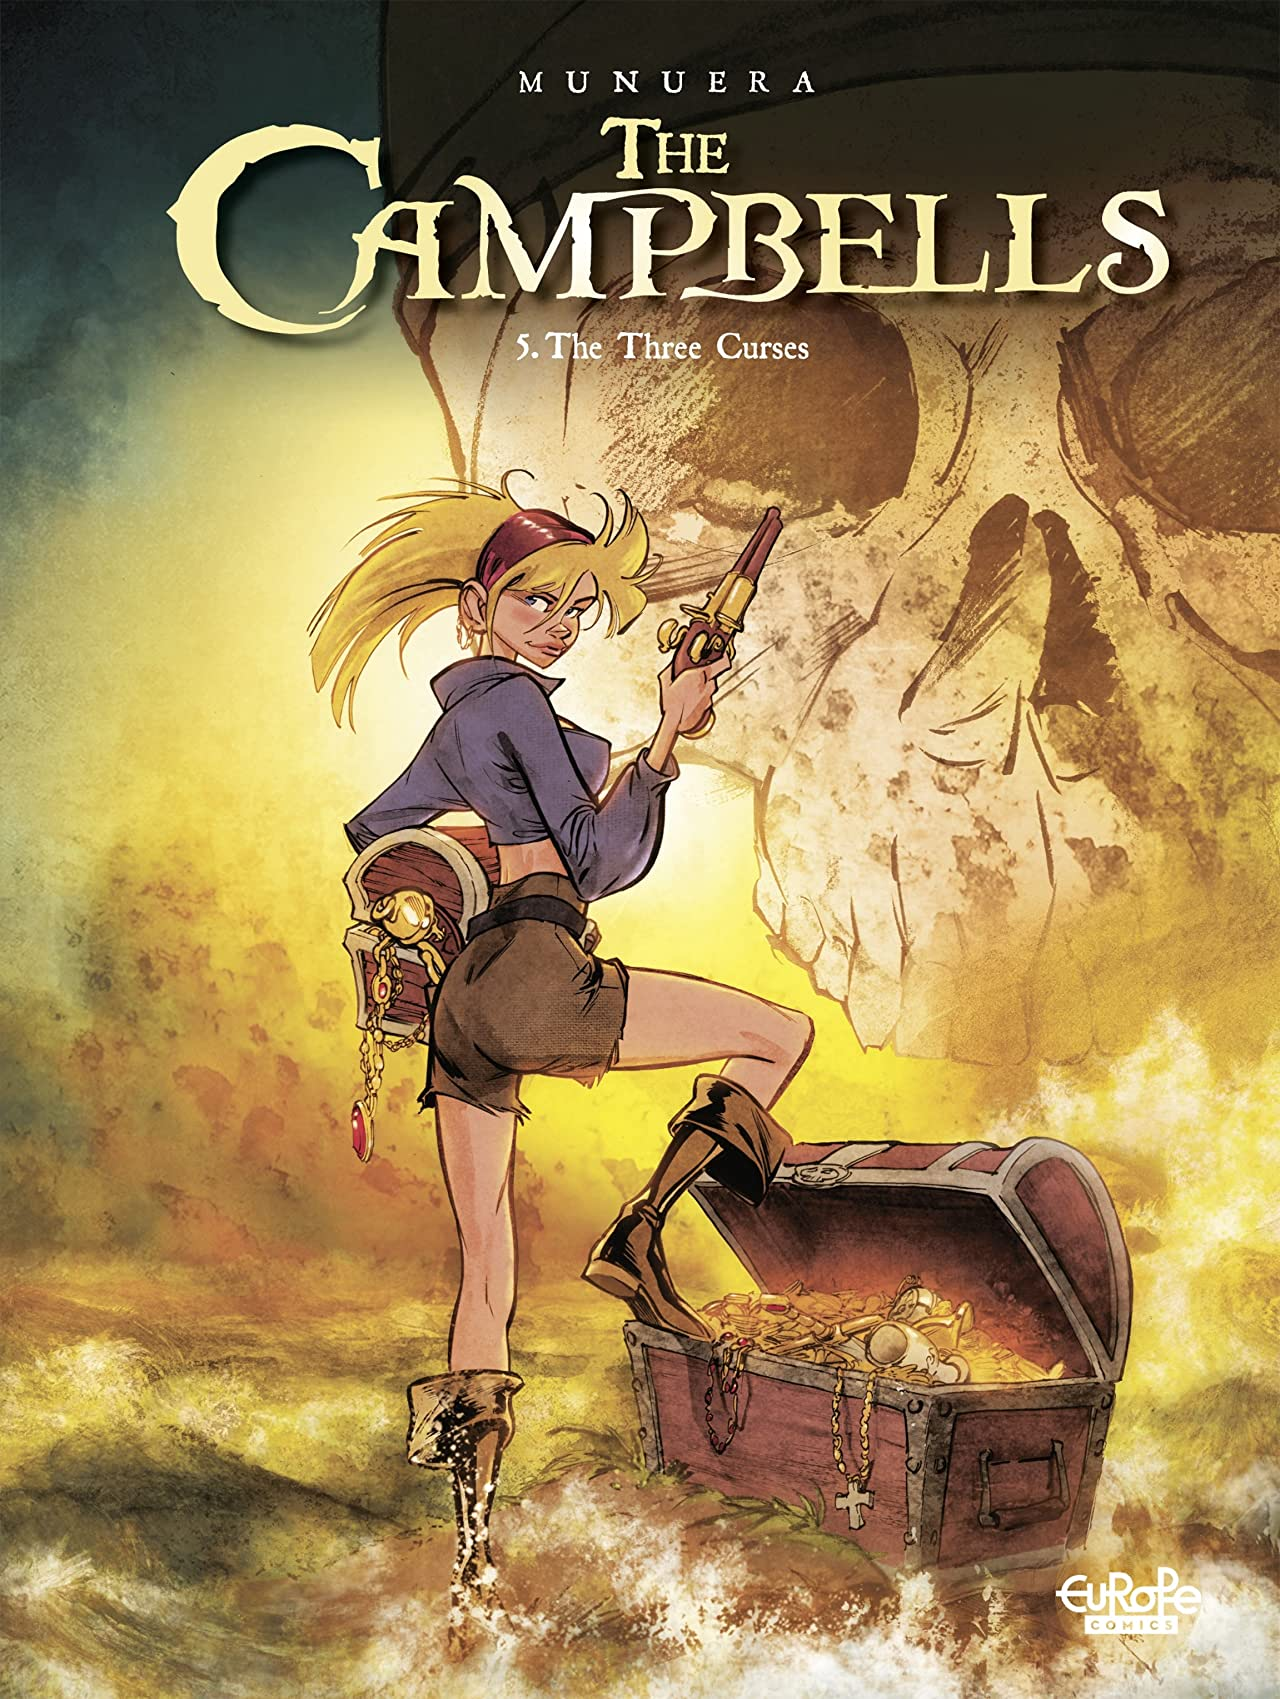 The Campbells #5: The Three Curses